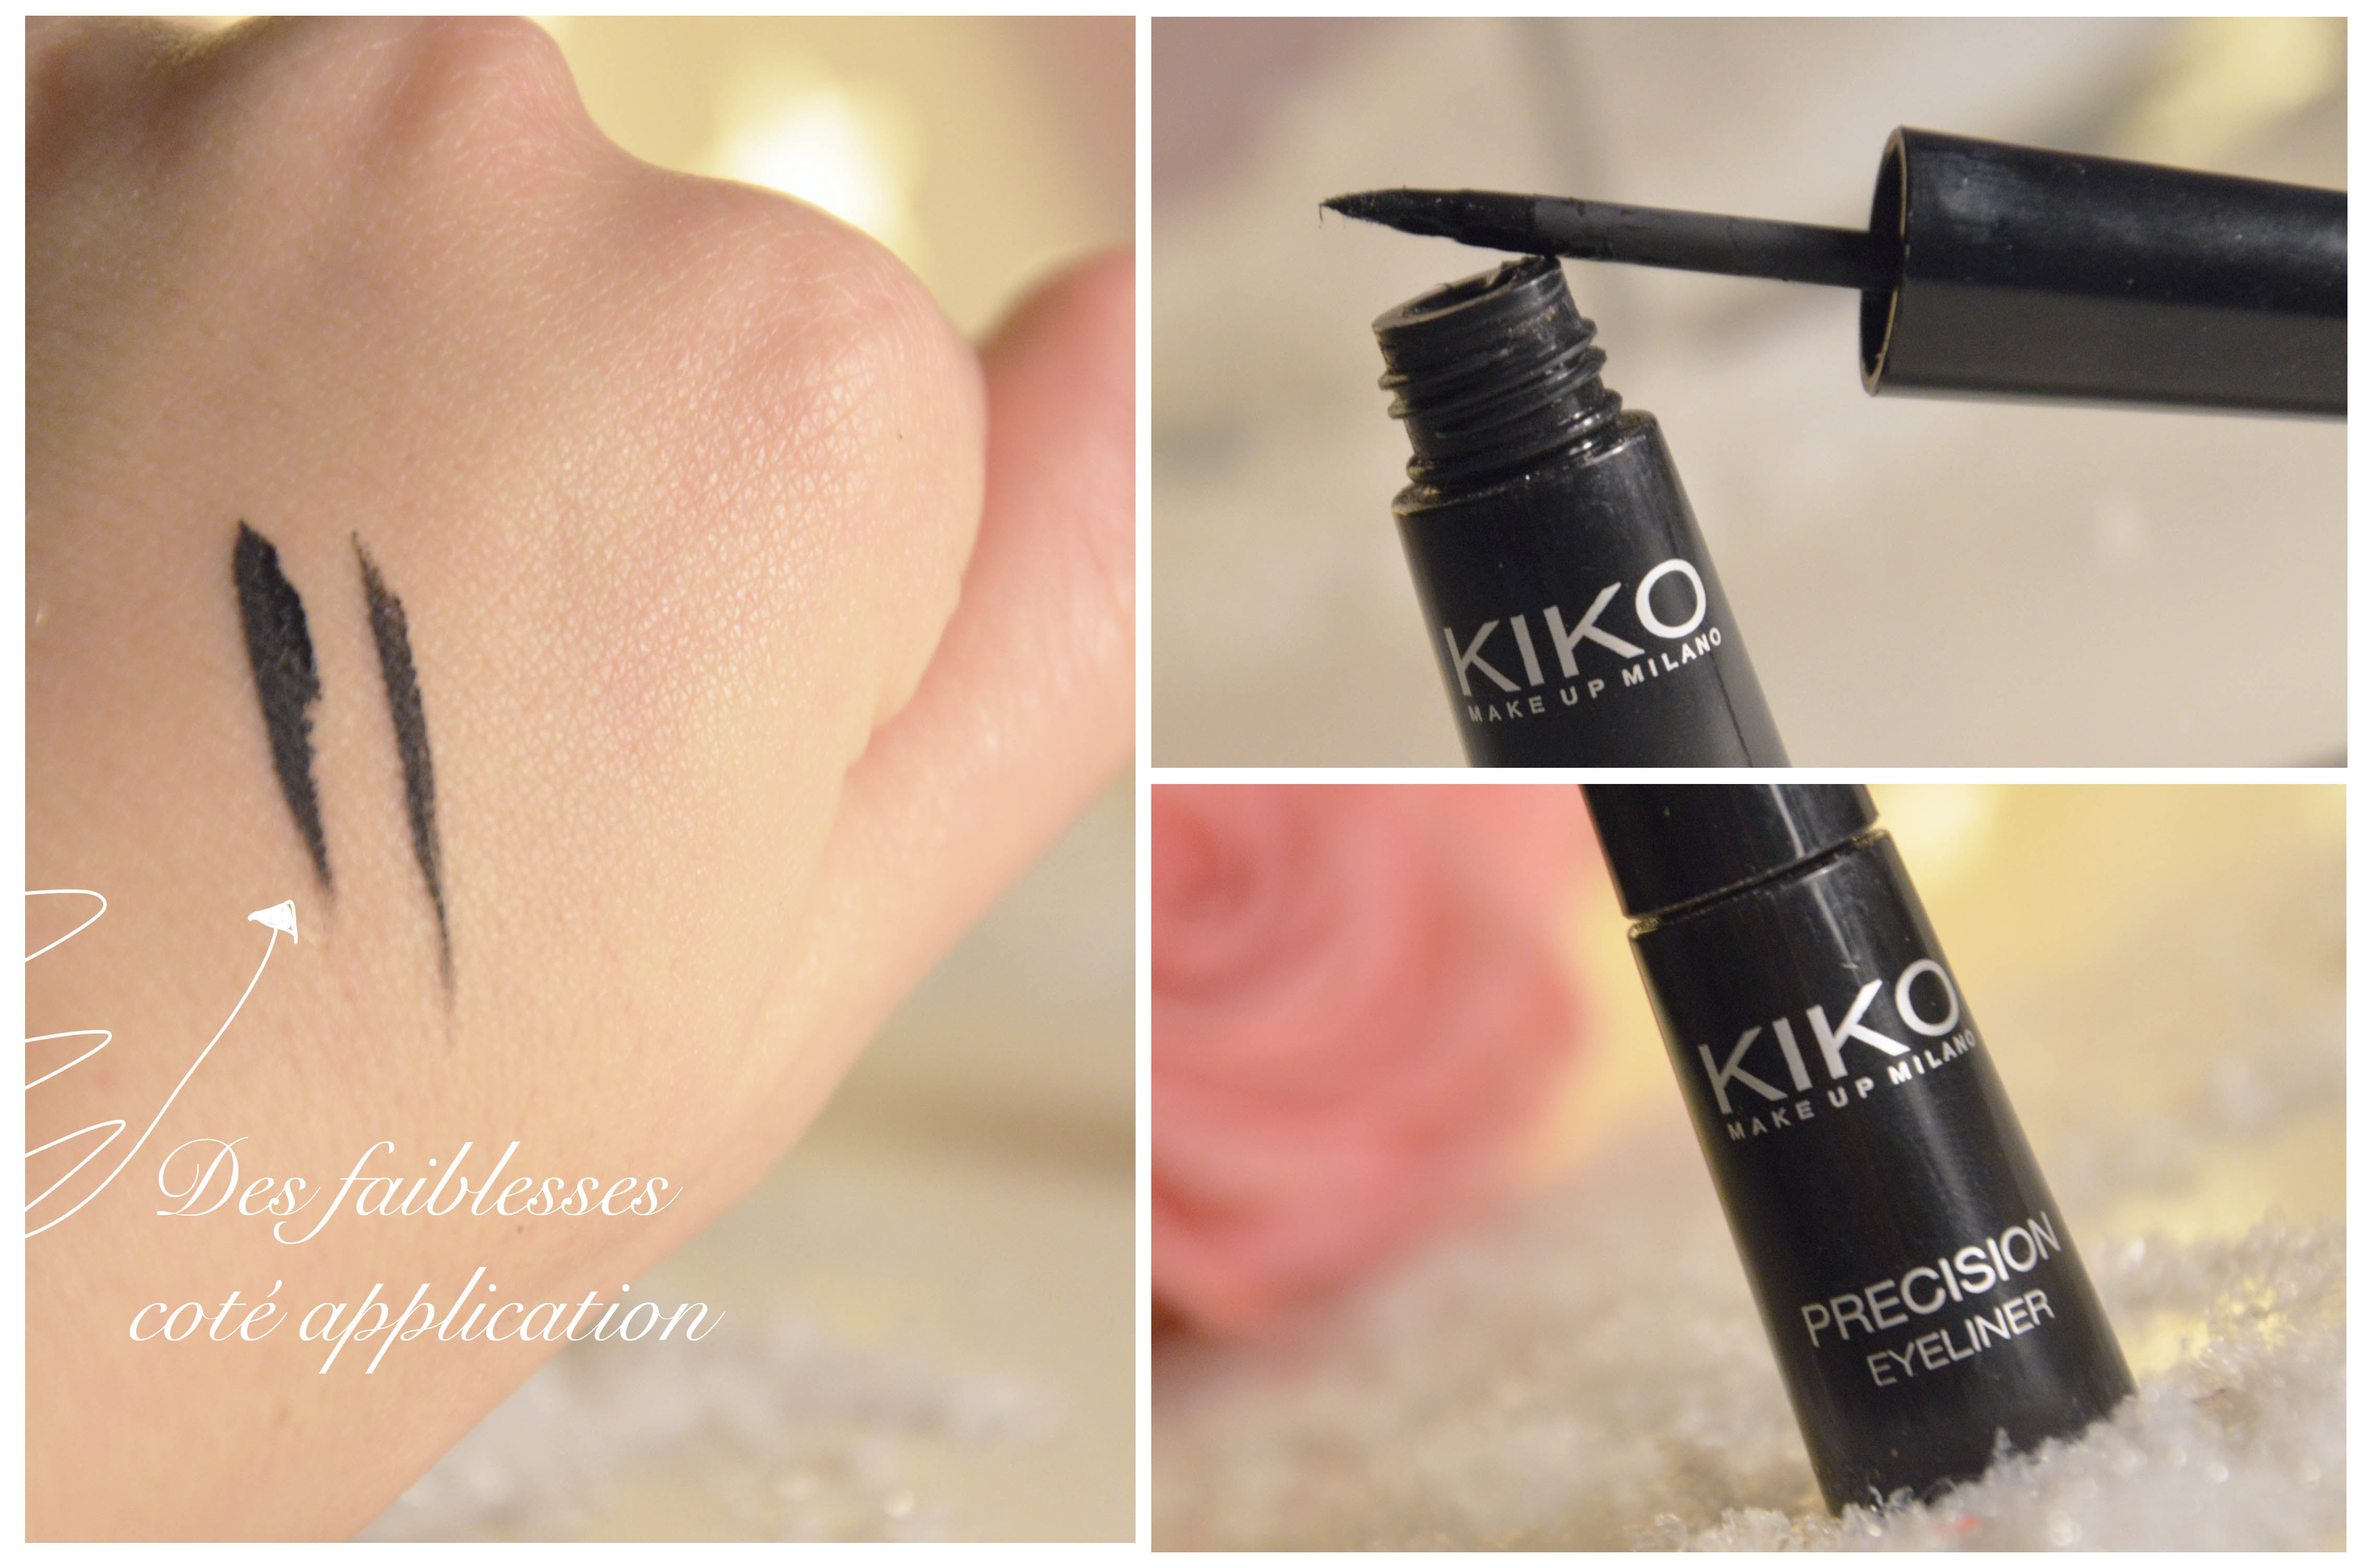 ALITTLEB_BLOG_BEAUTE_MES_DECEPTIONS_MAKEUP_FLIP_FLOP_KIKO_EYELINER_PRECISION_APPLICATION_EMBOUT